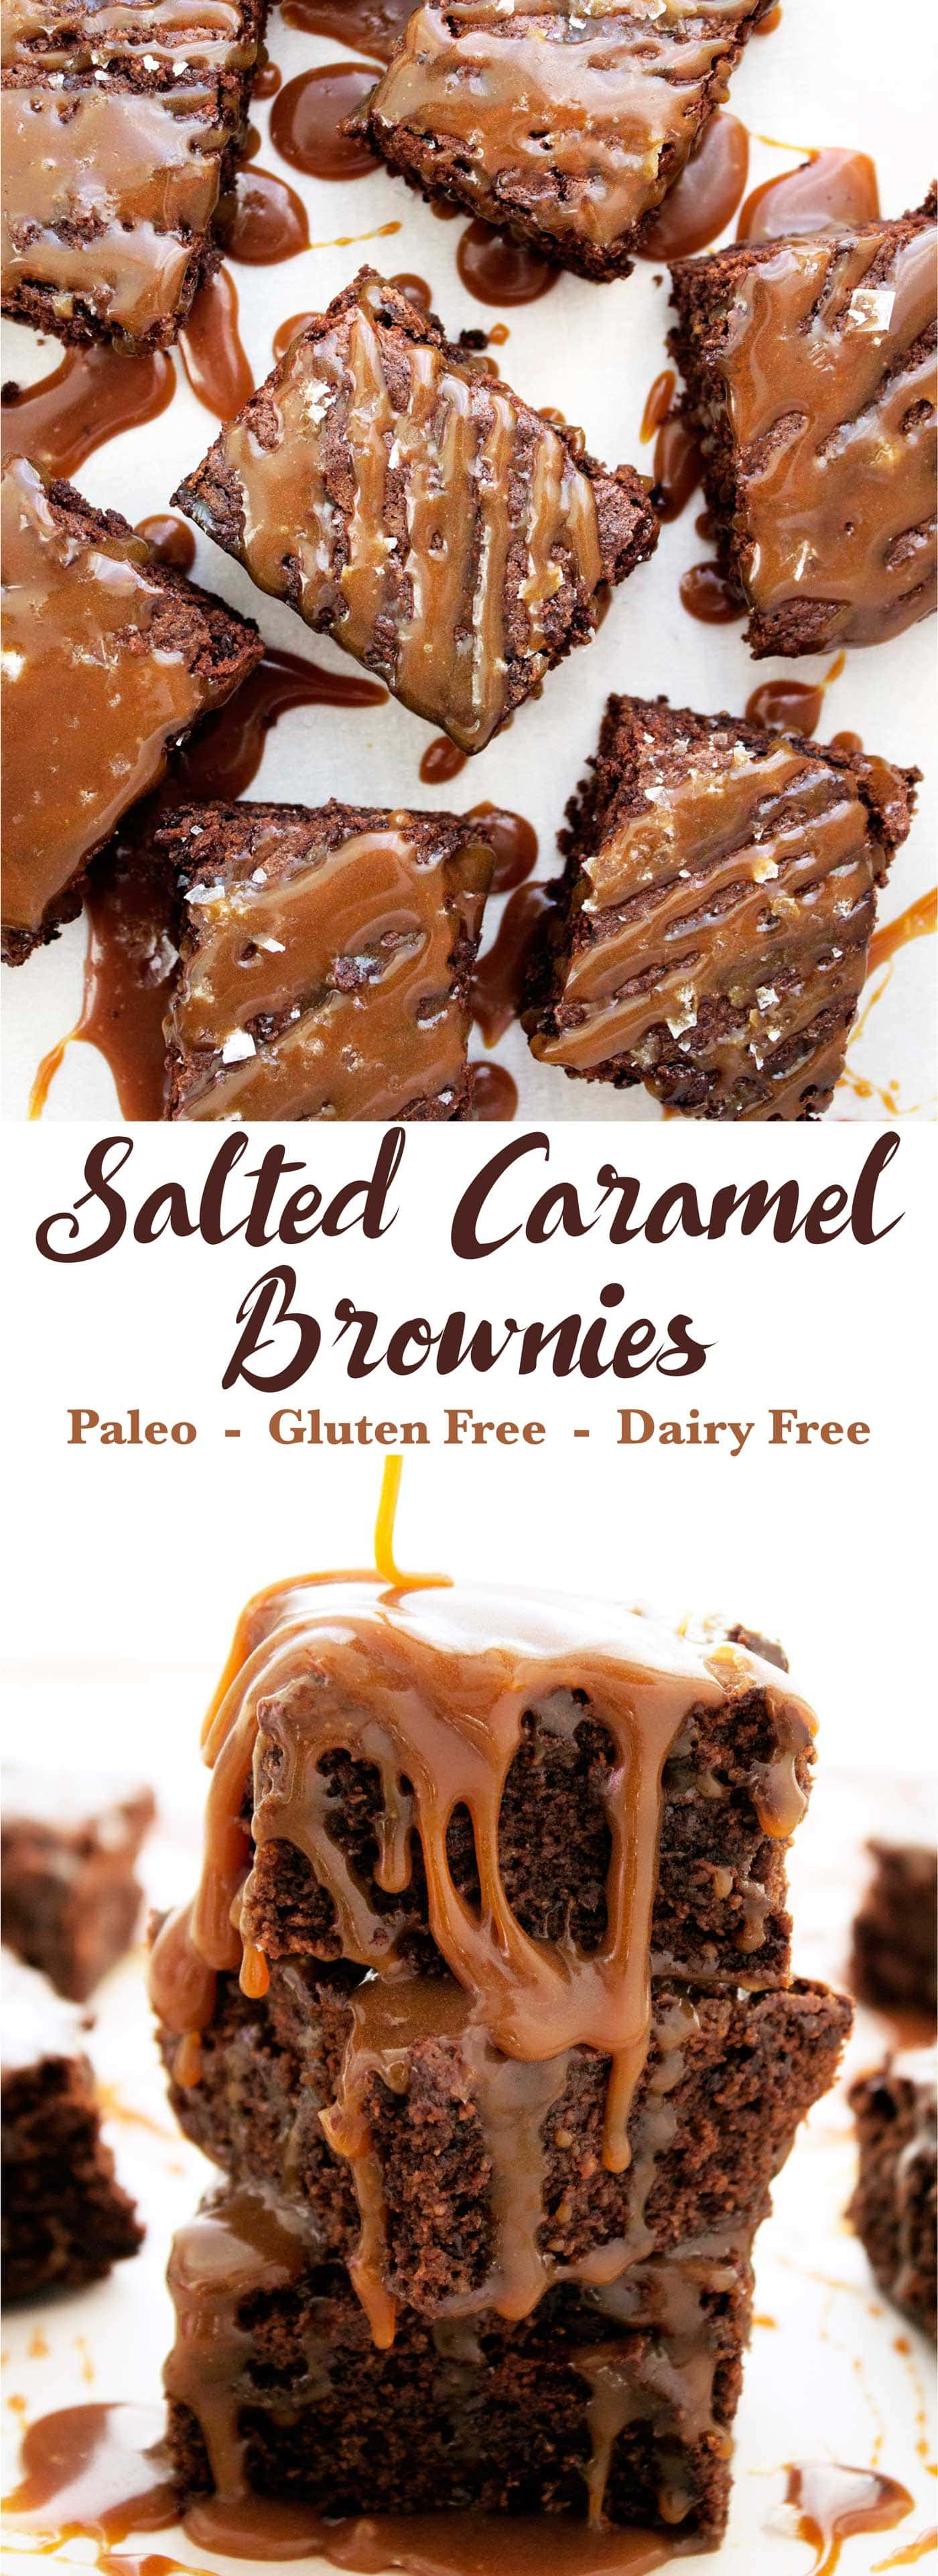 Paleo Salted Caramel Brownies | Kit's Coastal | #kitscoastal #coastalpaleo #paleo #glutenfree #dairyfree #brownies